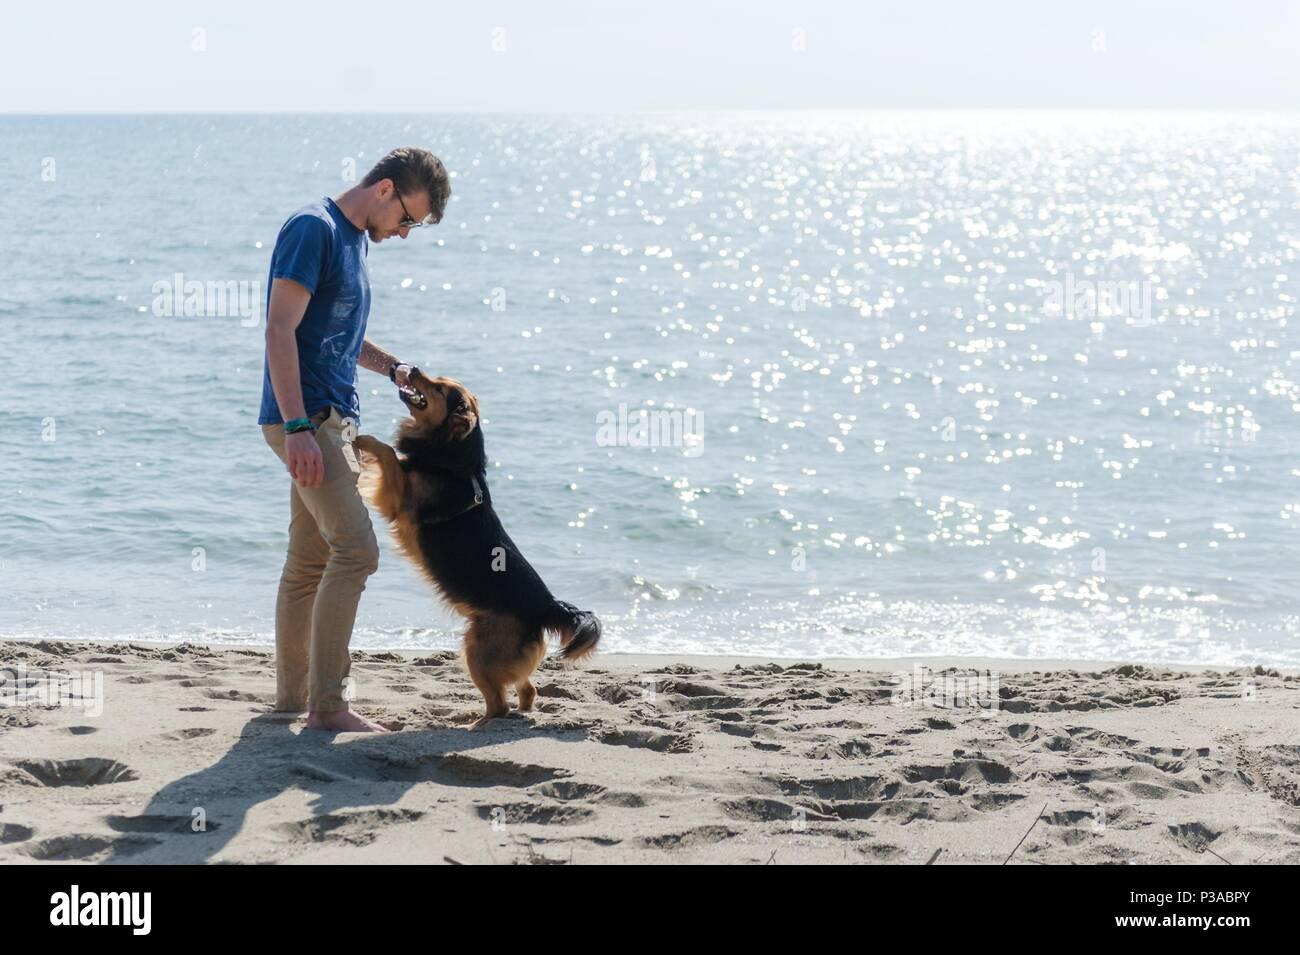 Young caucasian boy playing with dog on beach. Man and dog having fun on seaside - Stock Image